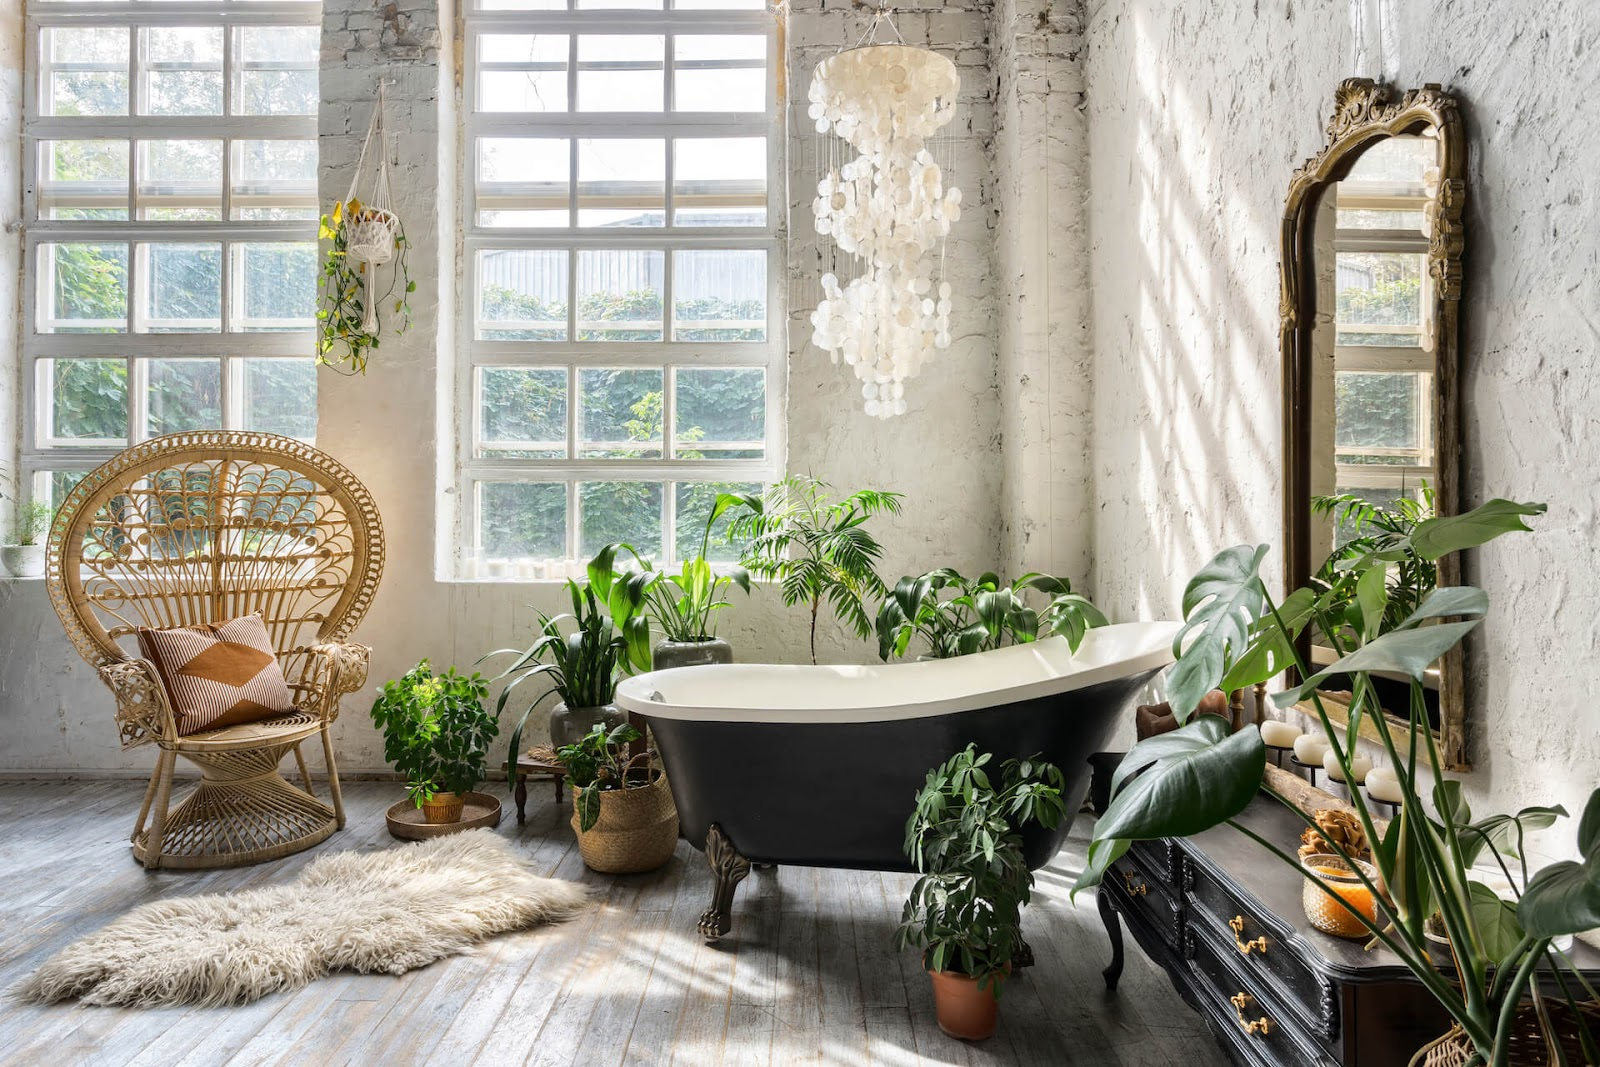 Shell chandelier over tub in bathroom